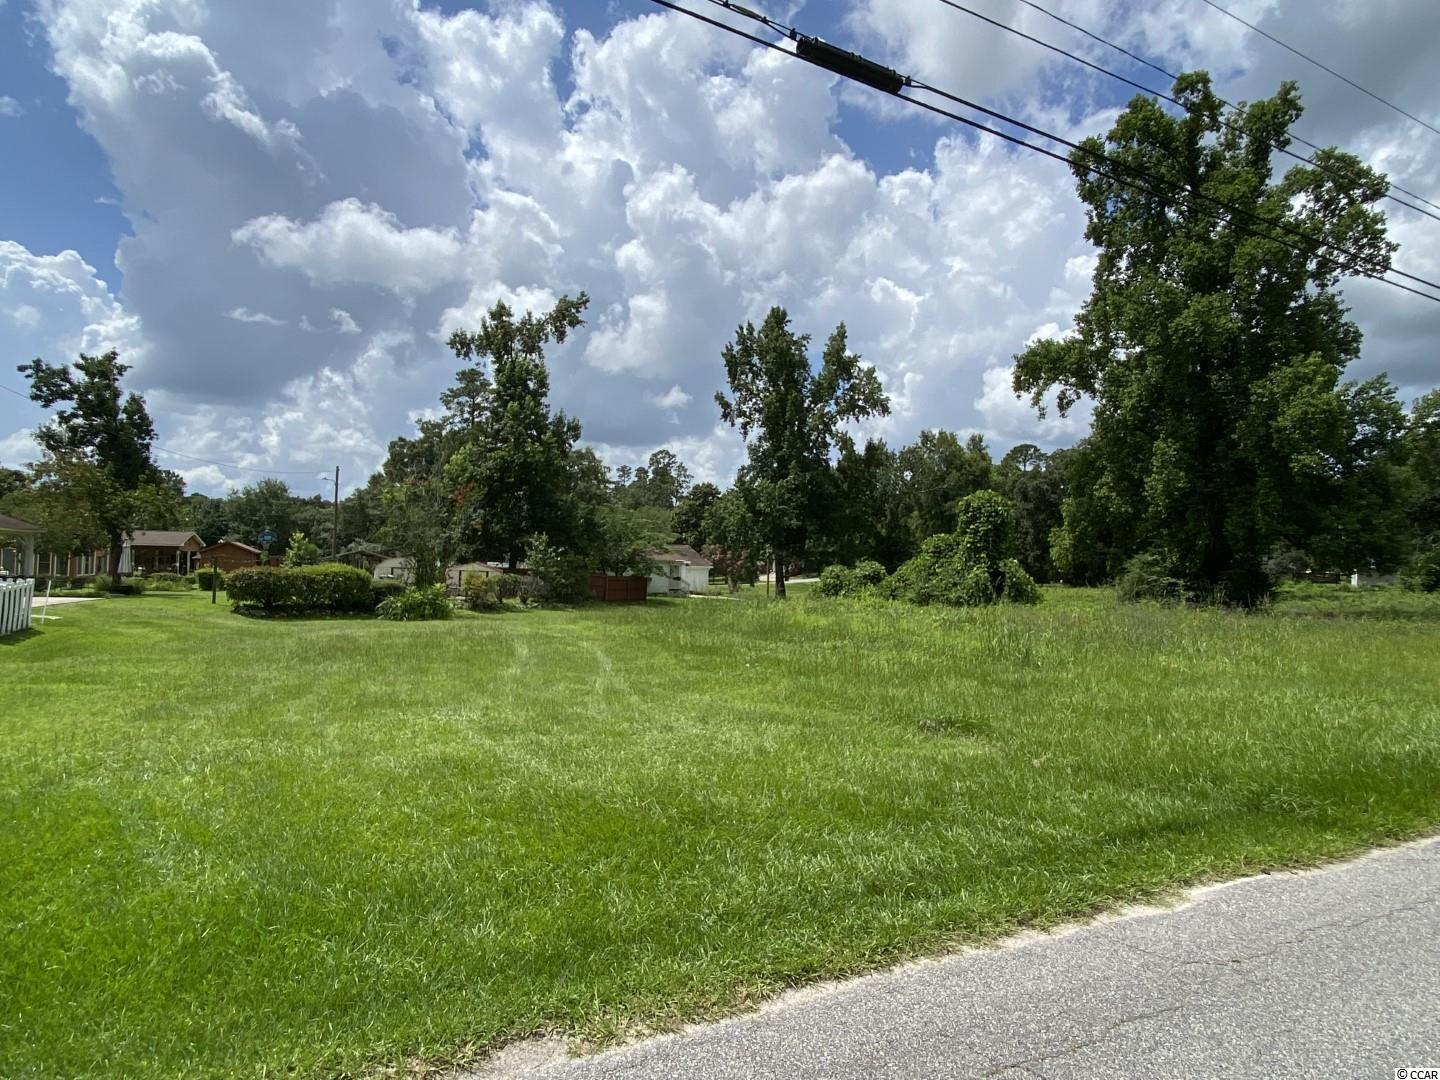 2.37 acres in Downtown Conway- Wonderful estate lot or possibility to subdivide into multiple lots- Over 500' of road frontage.